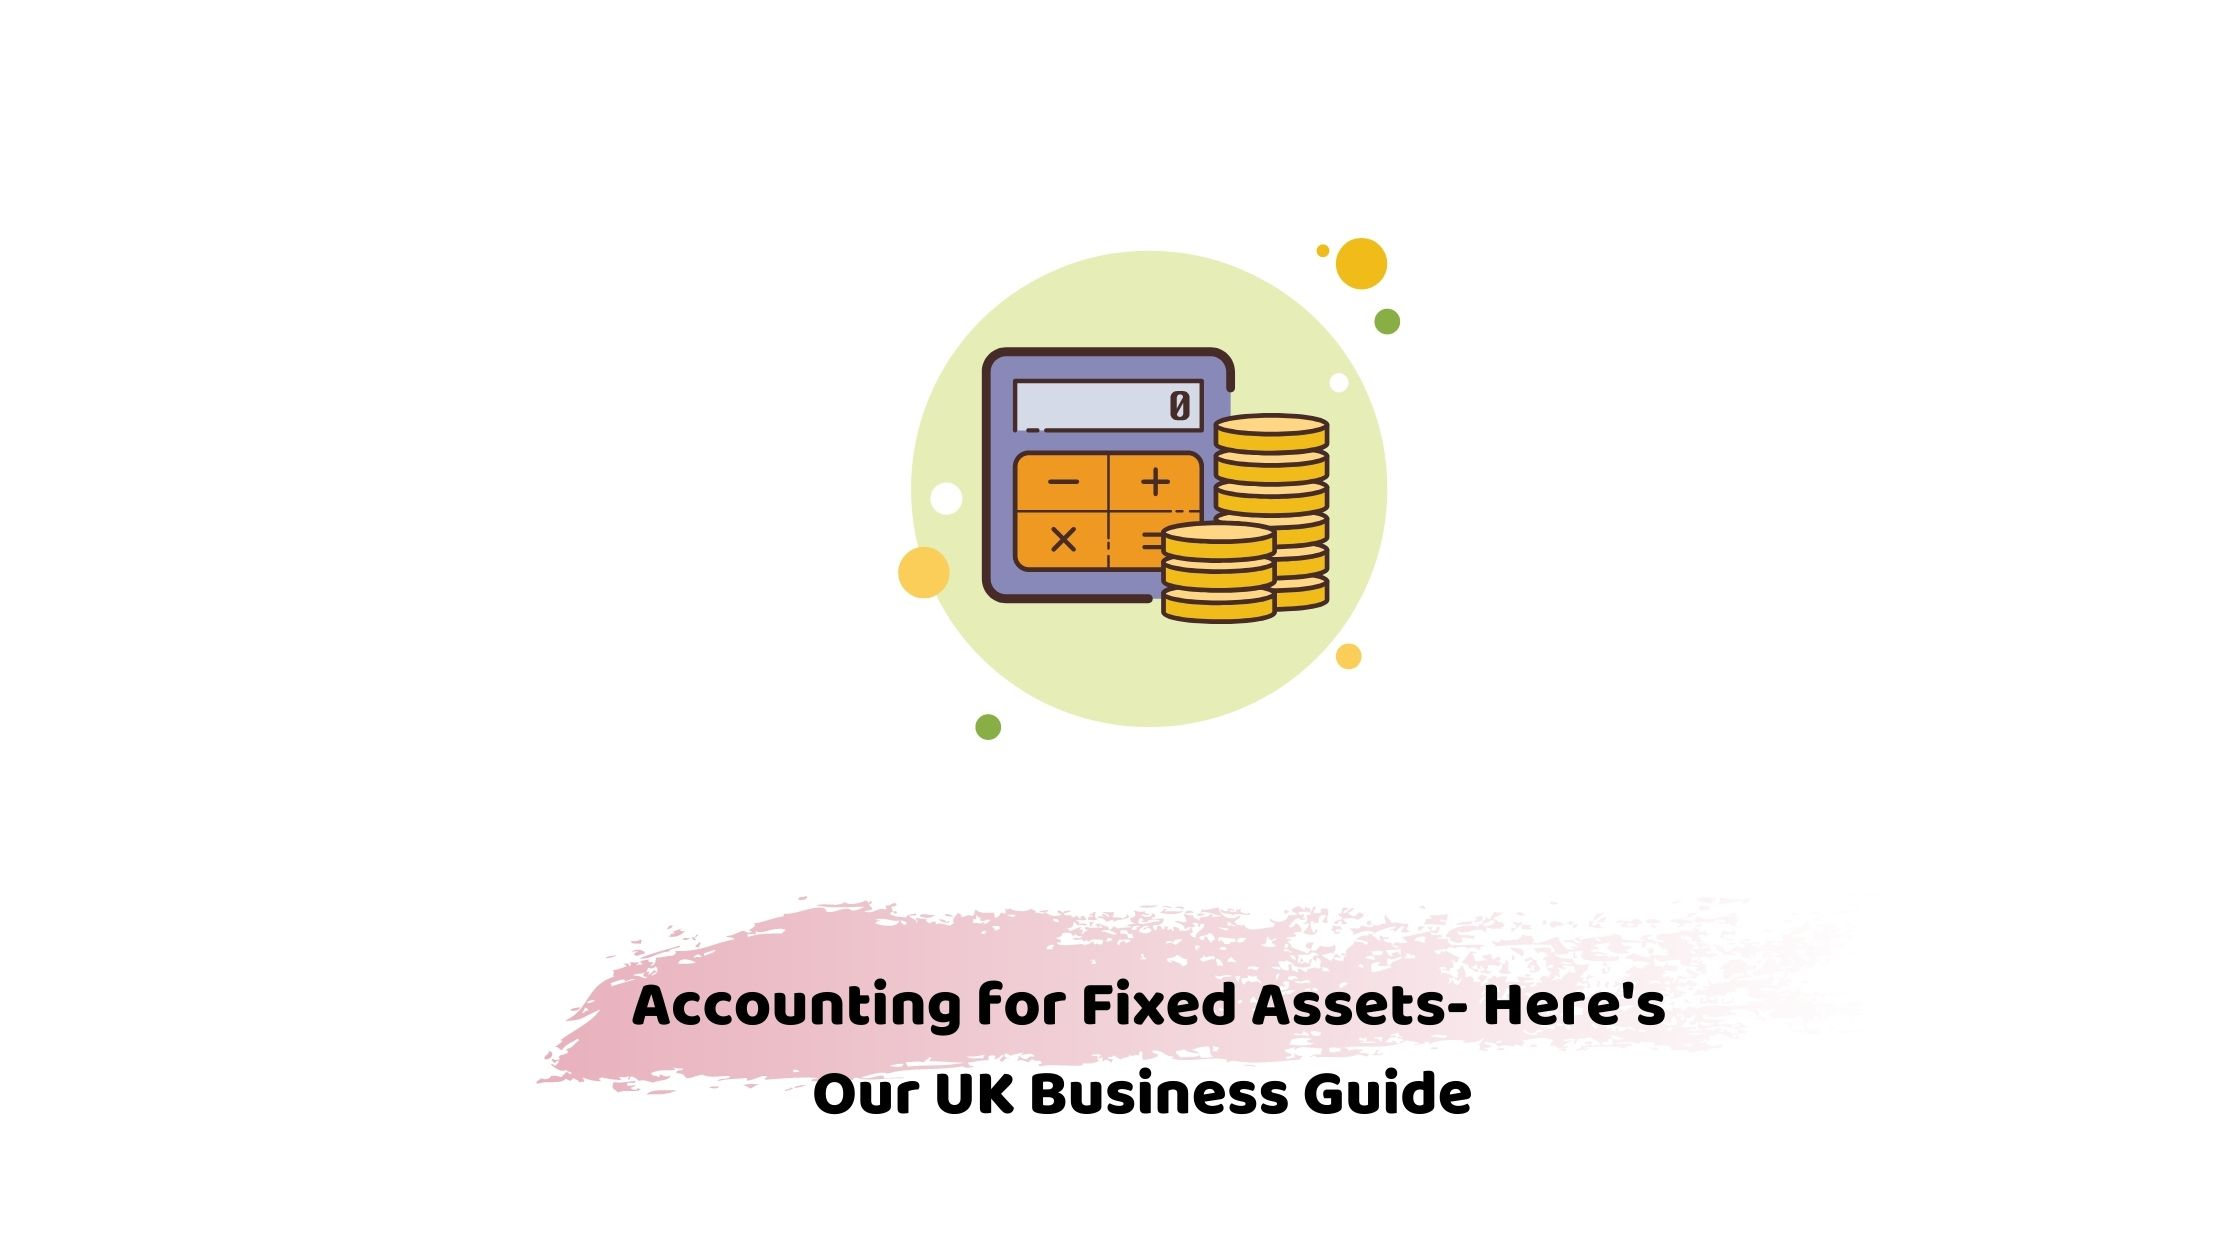 accounting for fixed assets- all you need to know